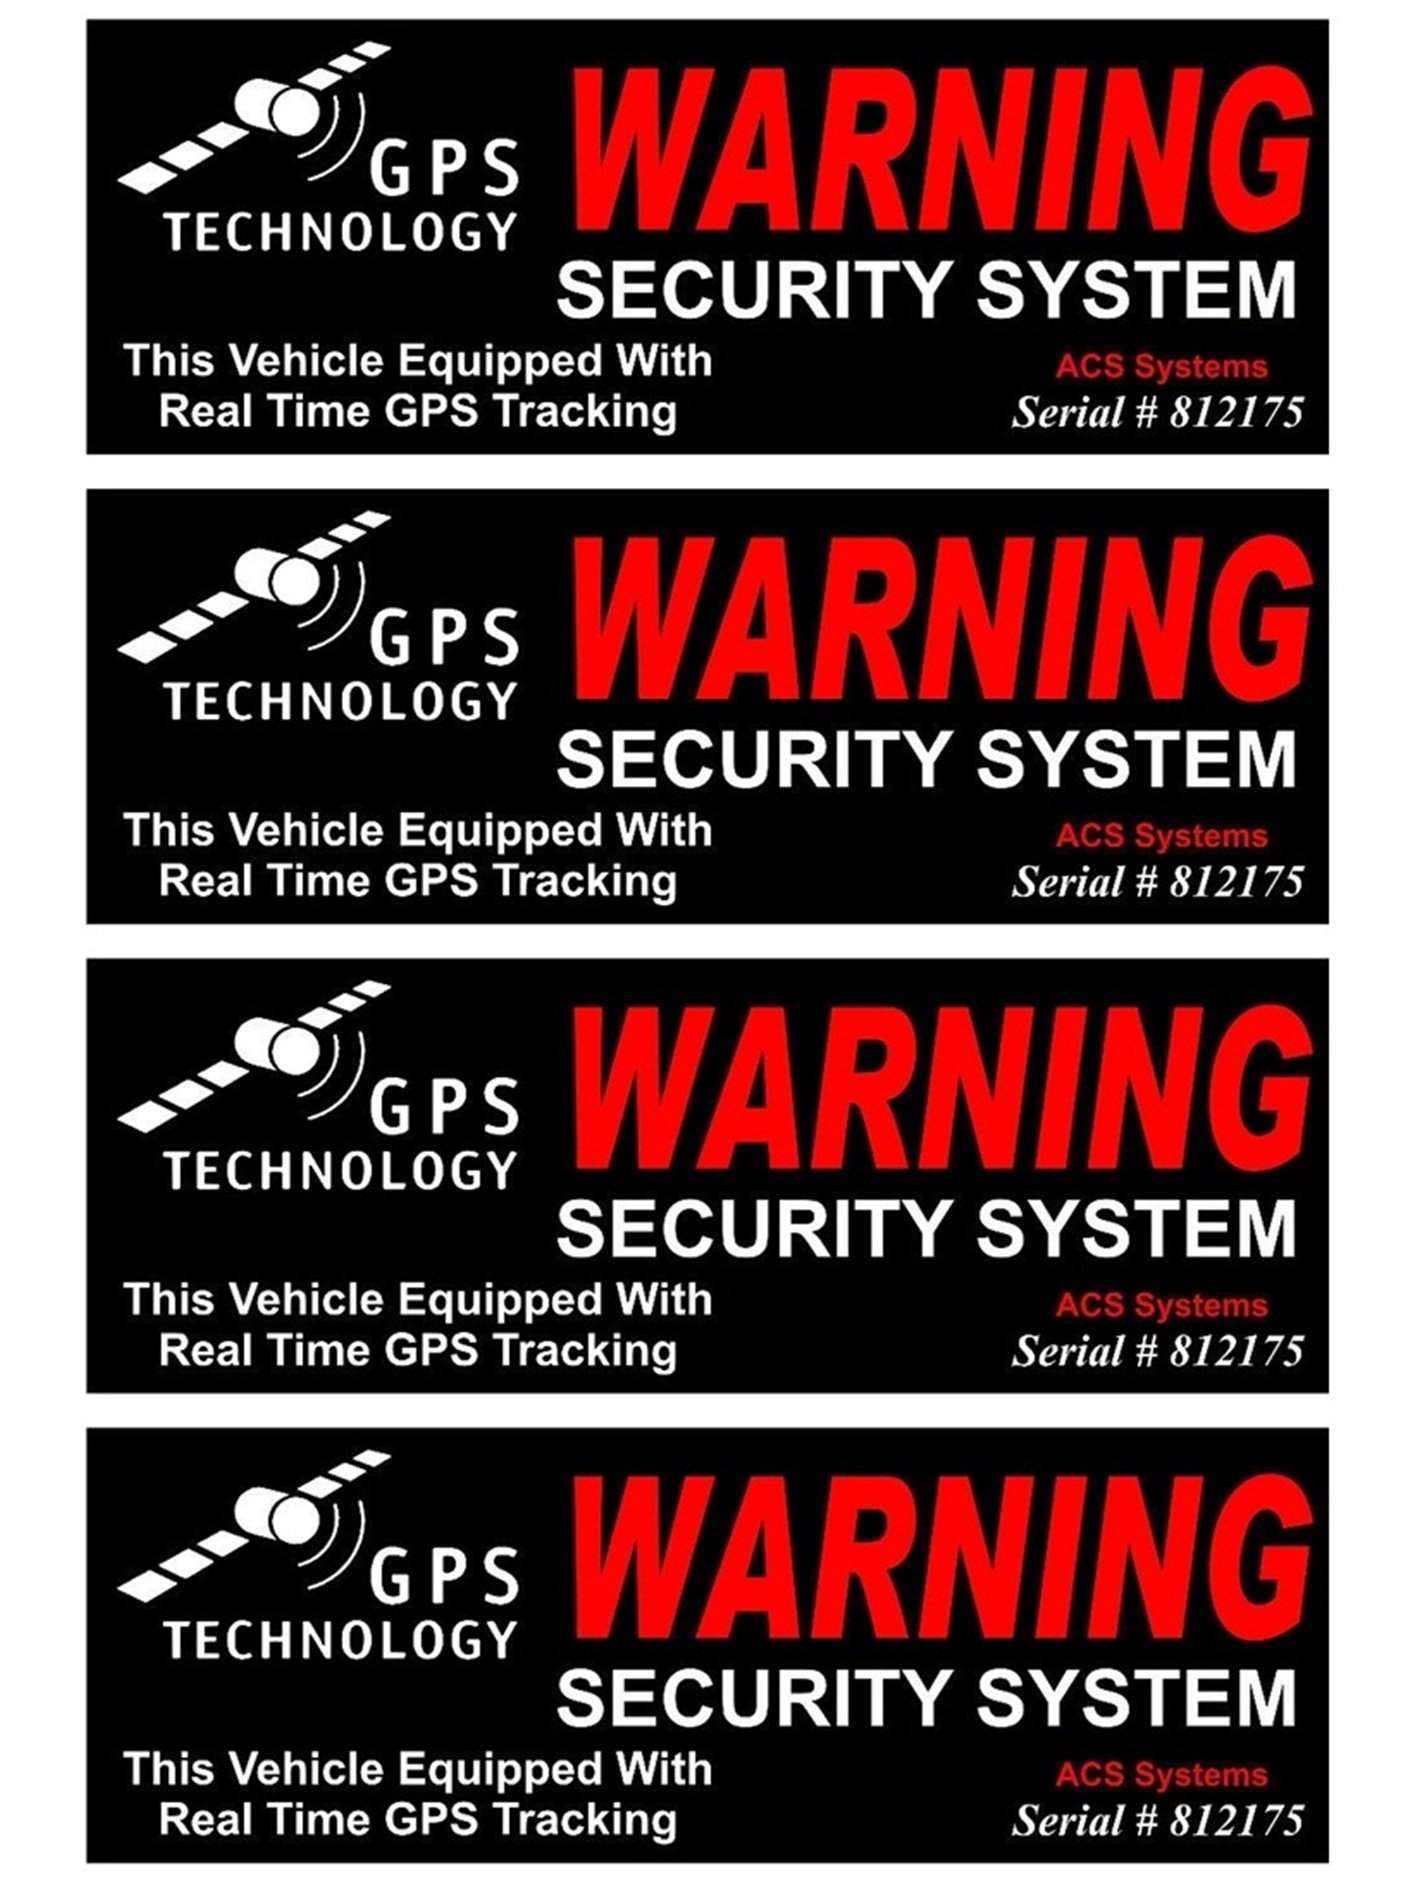 4 Set Brilliant Unique Warning GPS Tracking Security System Technology This Vehicle Equipped Real Time Inside Adhesive Sticker Sign Video Hr Surveillance Decals Fence Property Signs Size 4.5''x1.5''